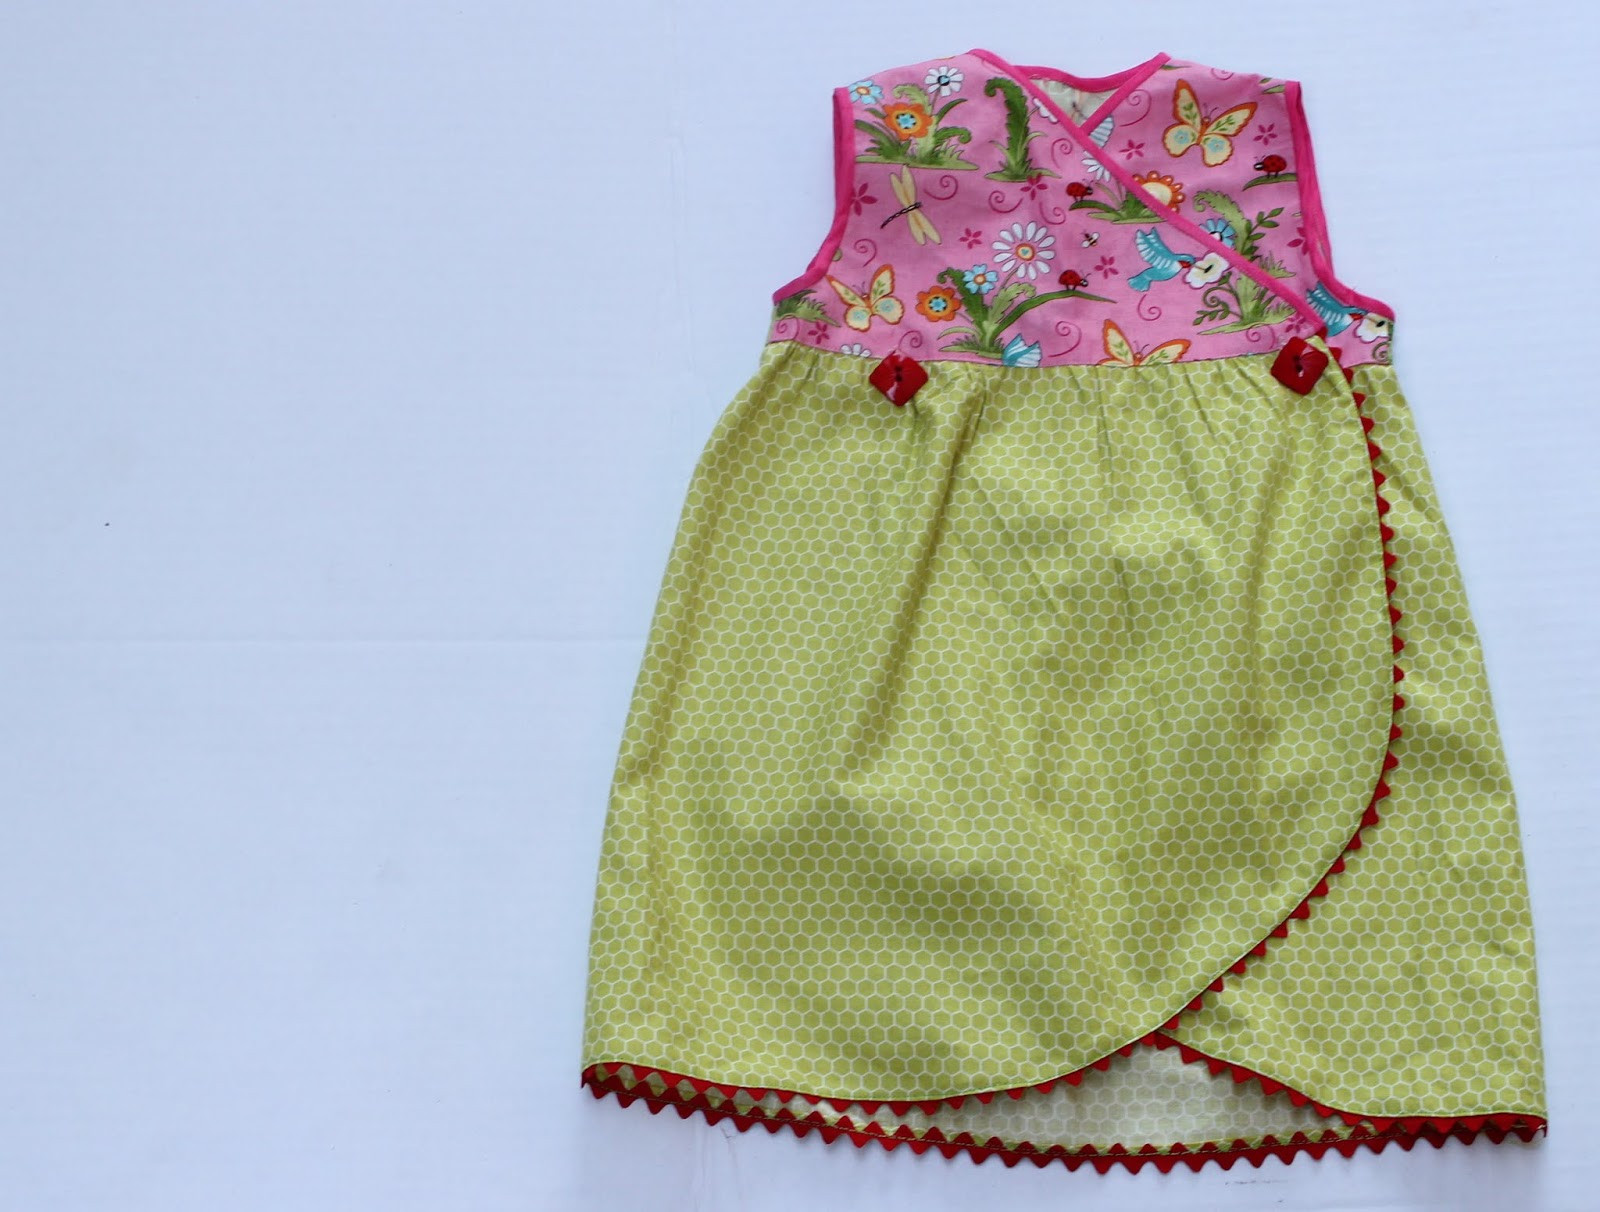 Best Of Its A Great and Easy Sew Project if You are fortable Free Baby Dress Patterns Of Wonderful 45 Pictures Free Baby Dress Patterns